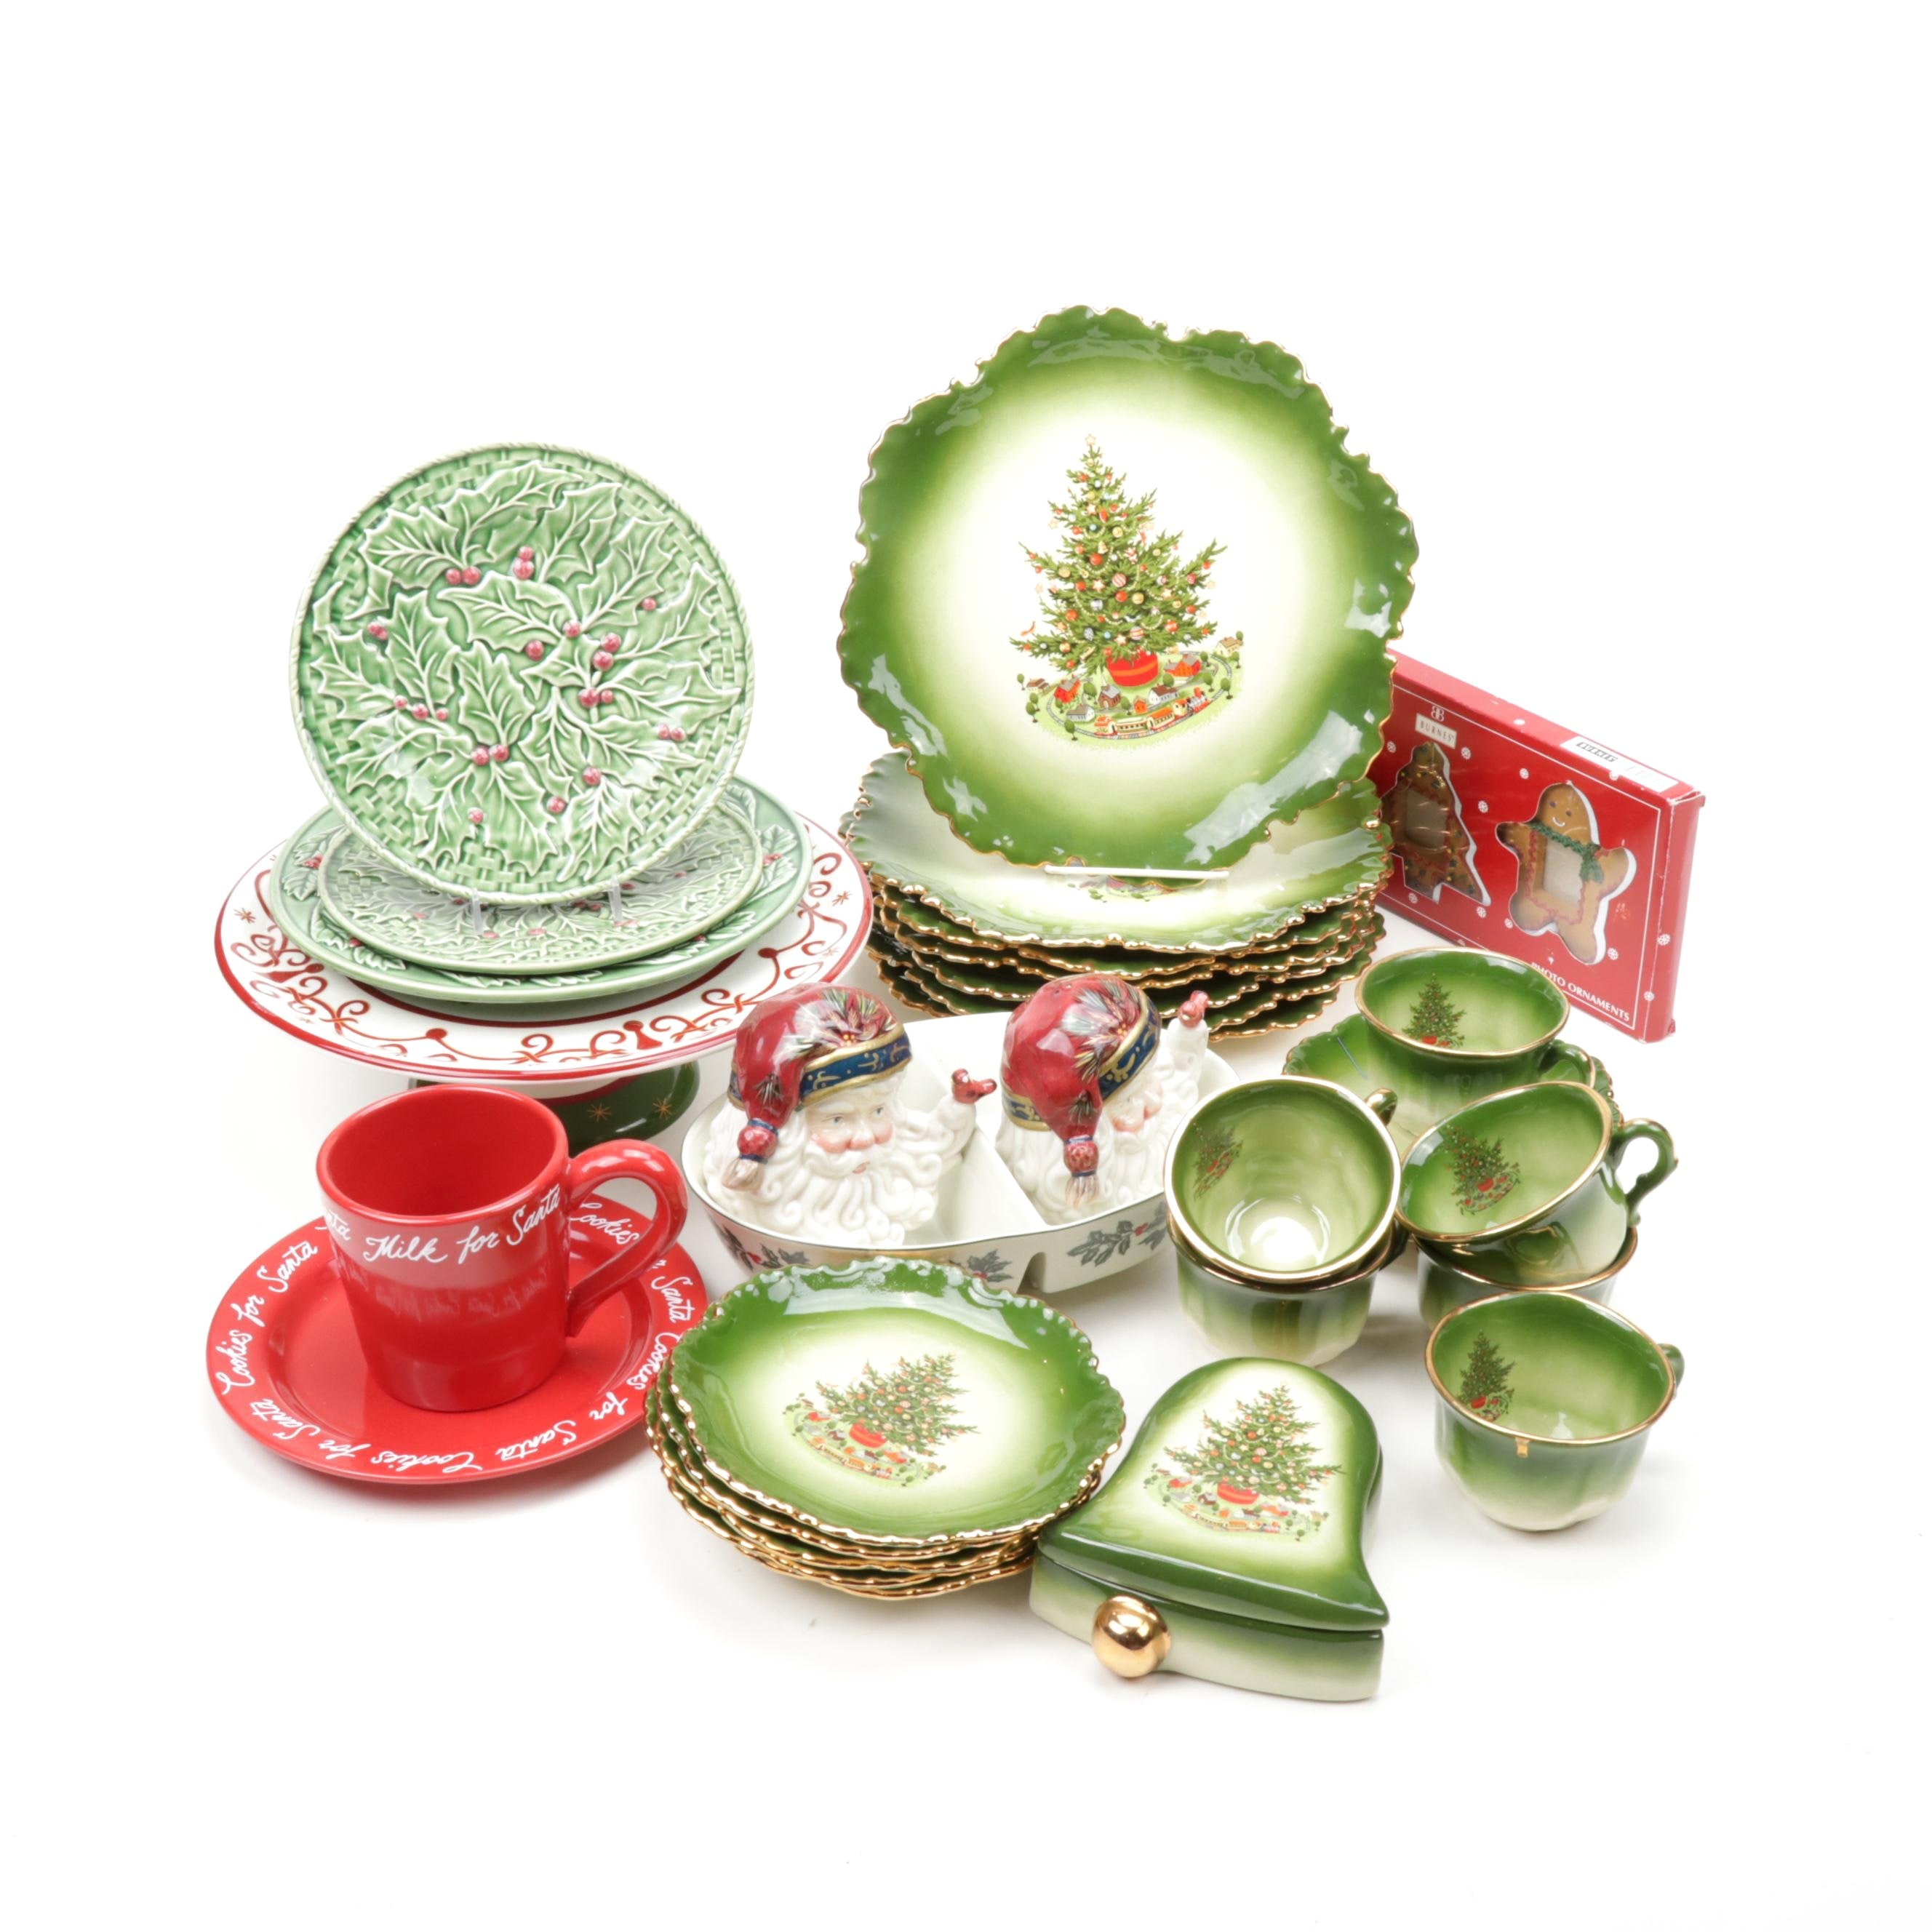 Christmas Tableware and Serveware, Vintage and Contemporary